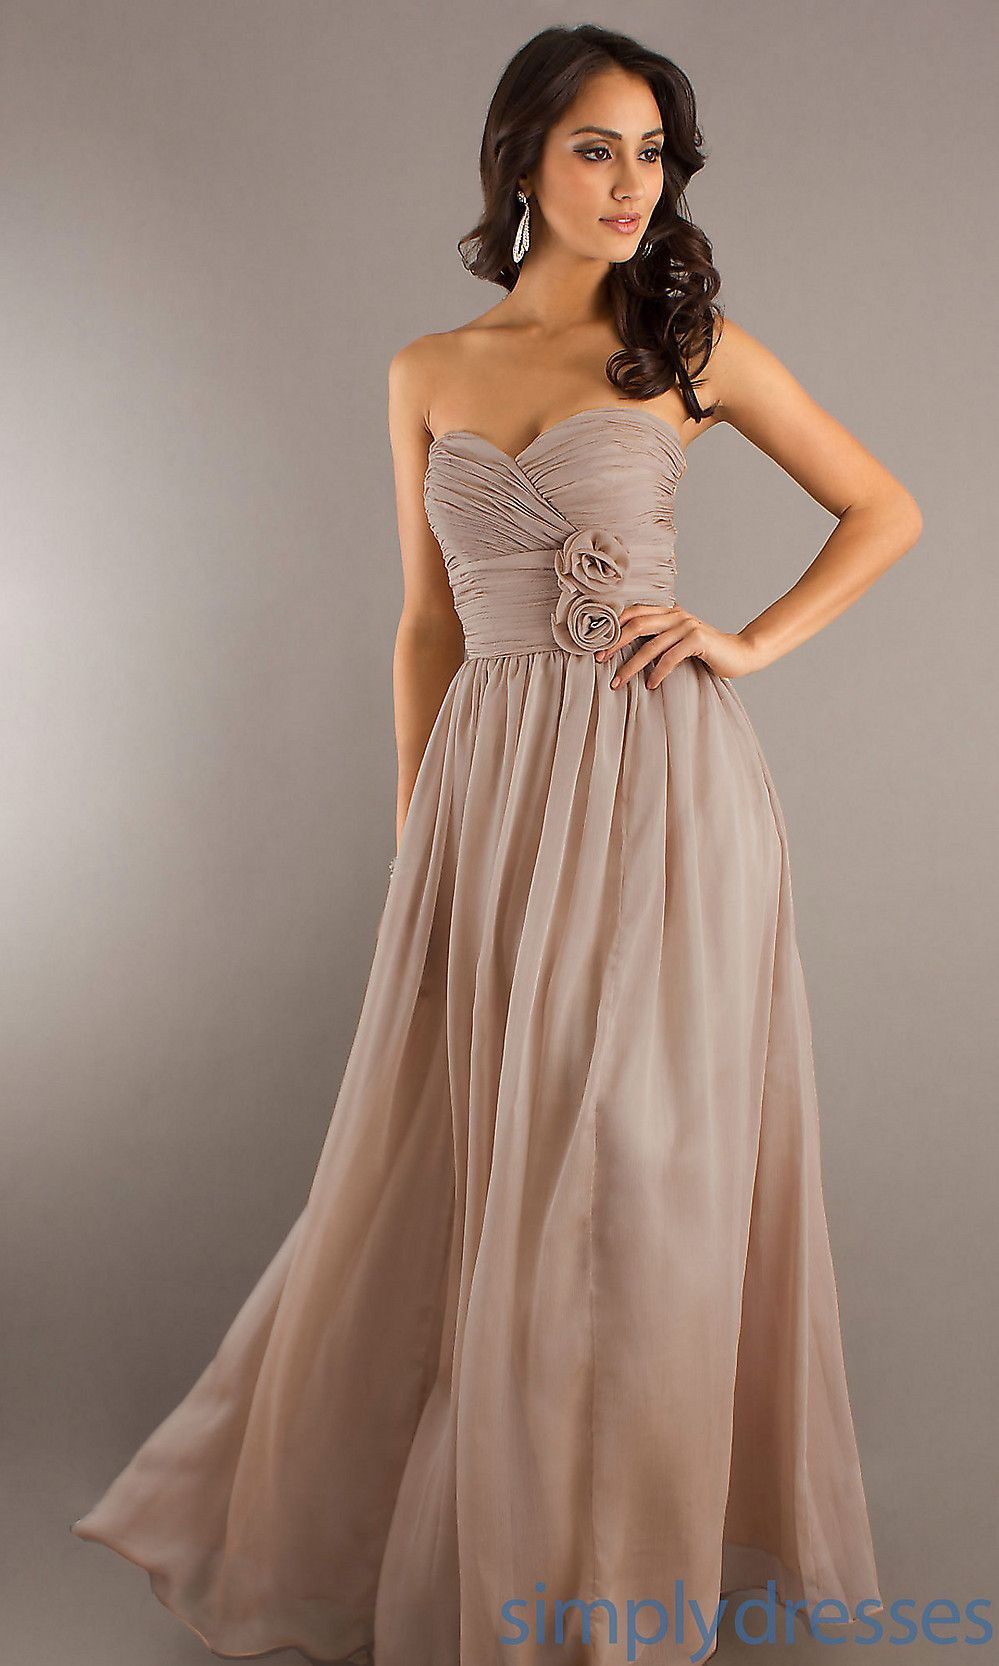 Classic long strapless prom gown simply dresses